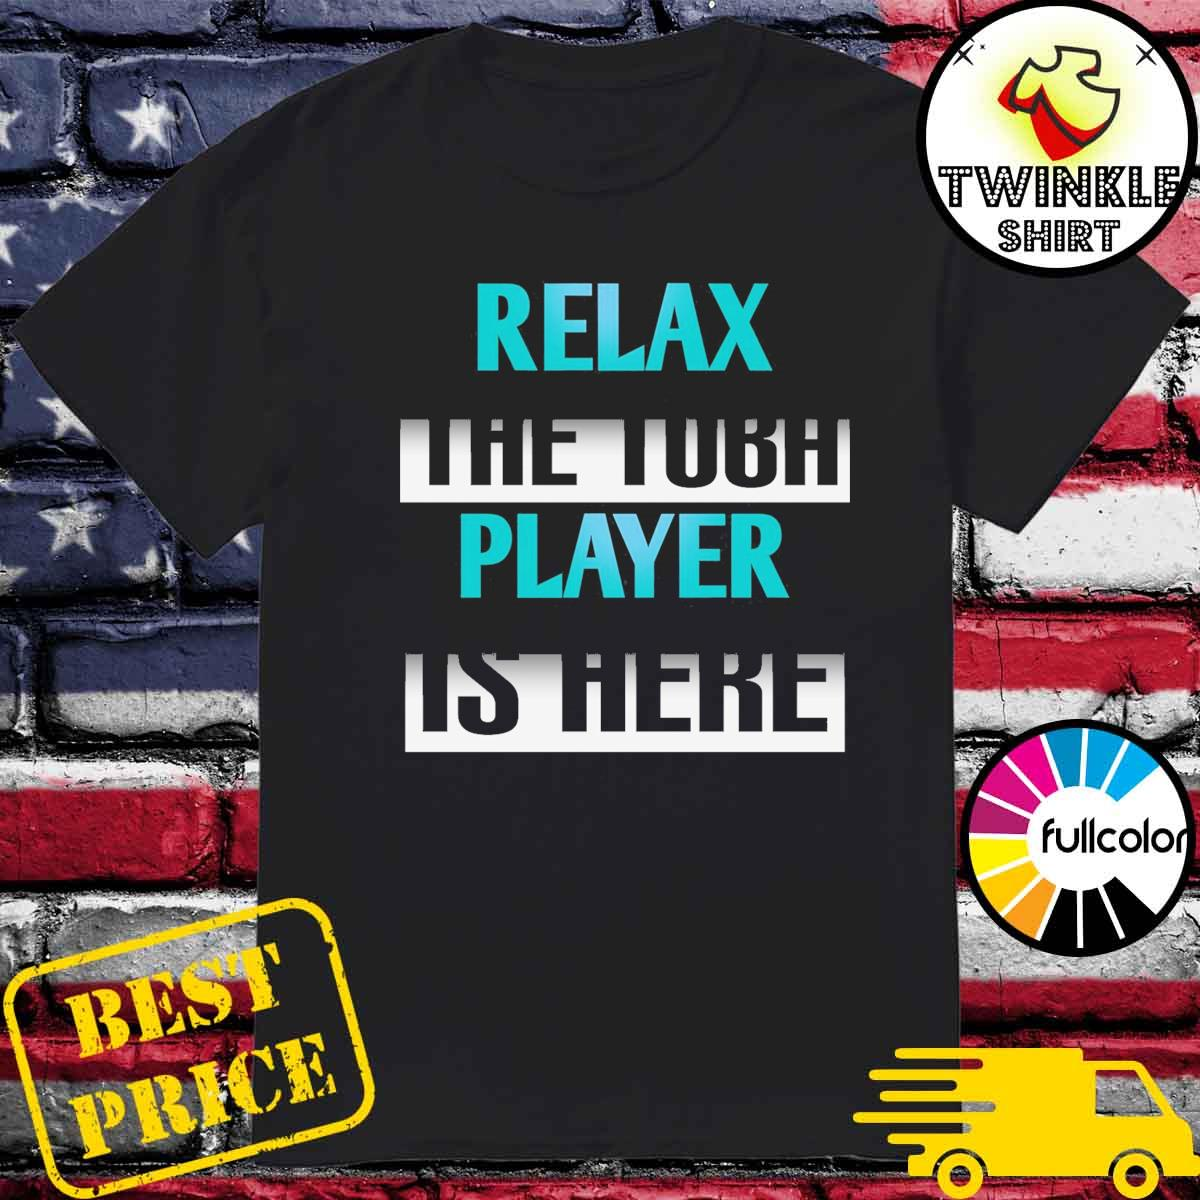 official Tubist Relax The Tuba Player Is Here shirt